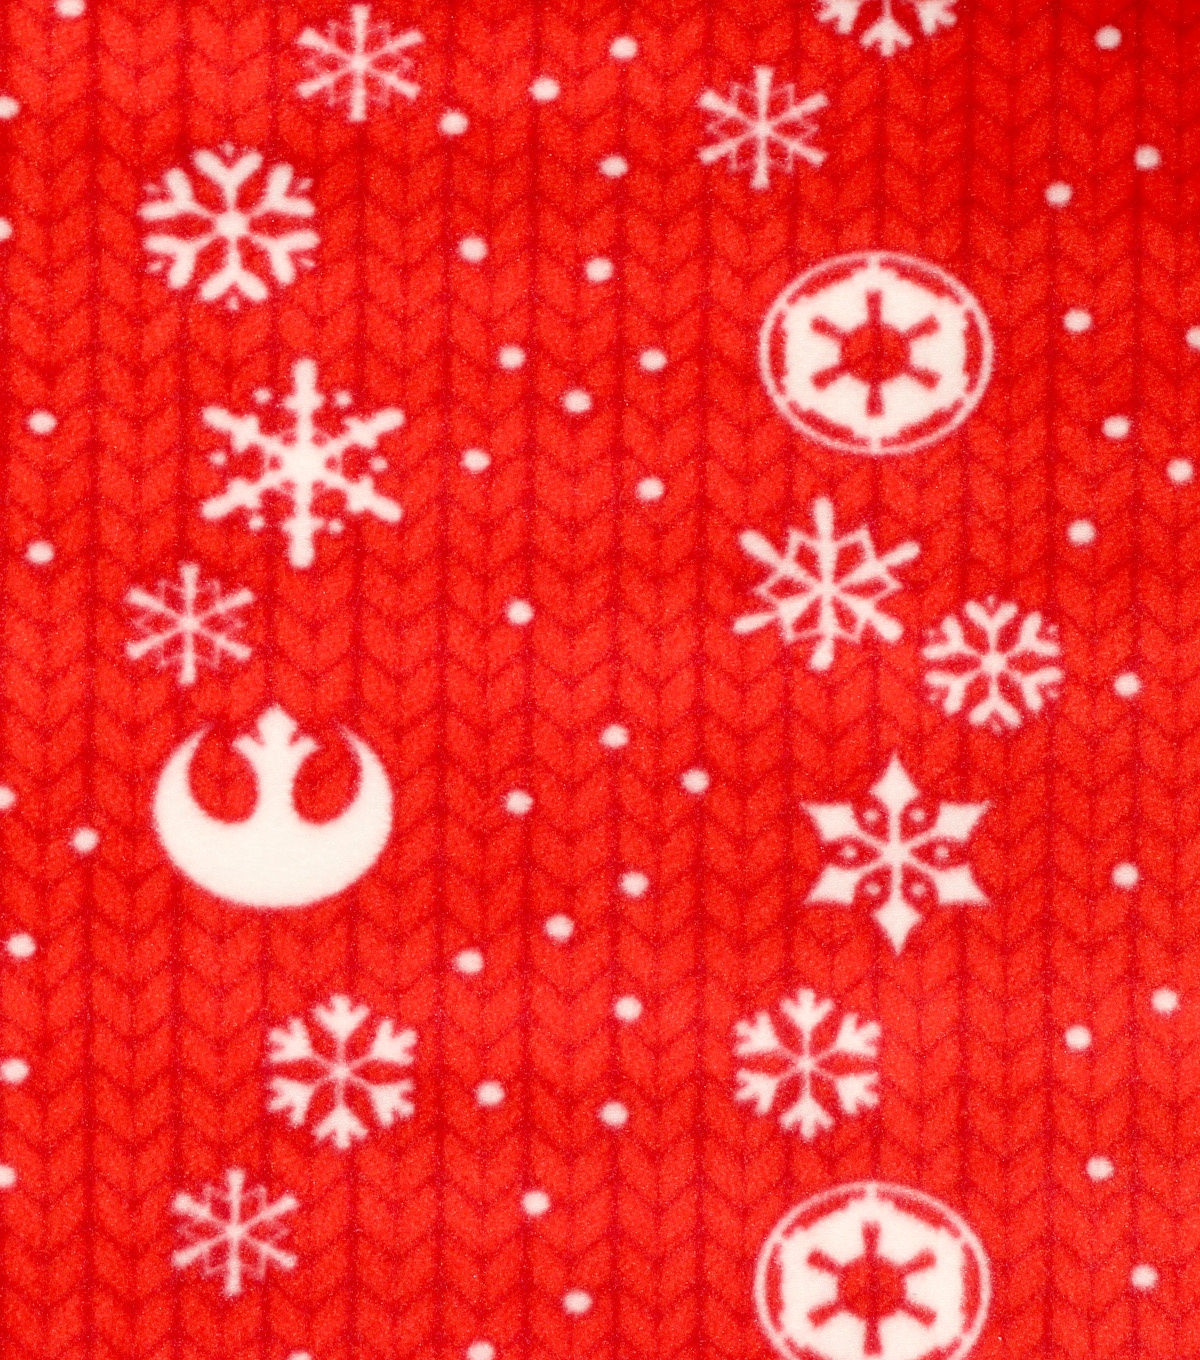 Star Wars Fleece Fabric 58\u0022-Sweater Knit